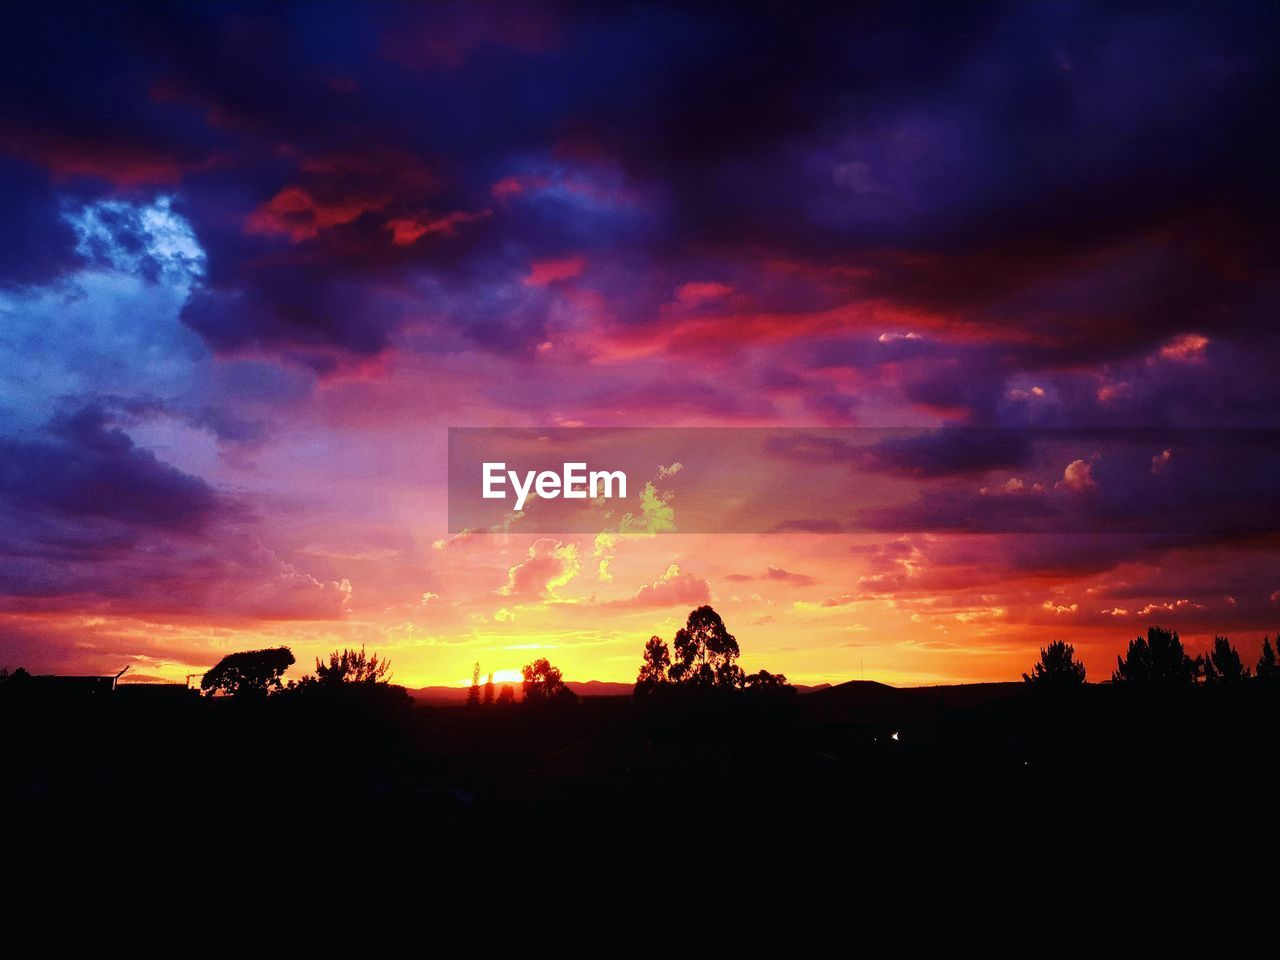 sky, sunset, cloud - sky, silhouette, beauty in nature, scenics - nature, tranquil scene, tranquility, orange color, nature, no people, environment, idyllic, non-urban scene, landscape, tree, plant, dramatic sky, outdoors, majestic